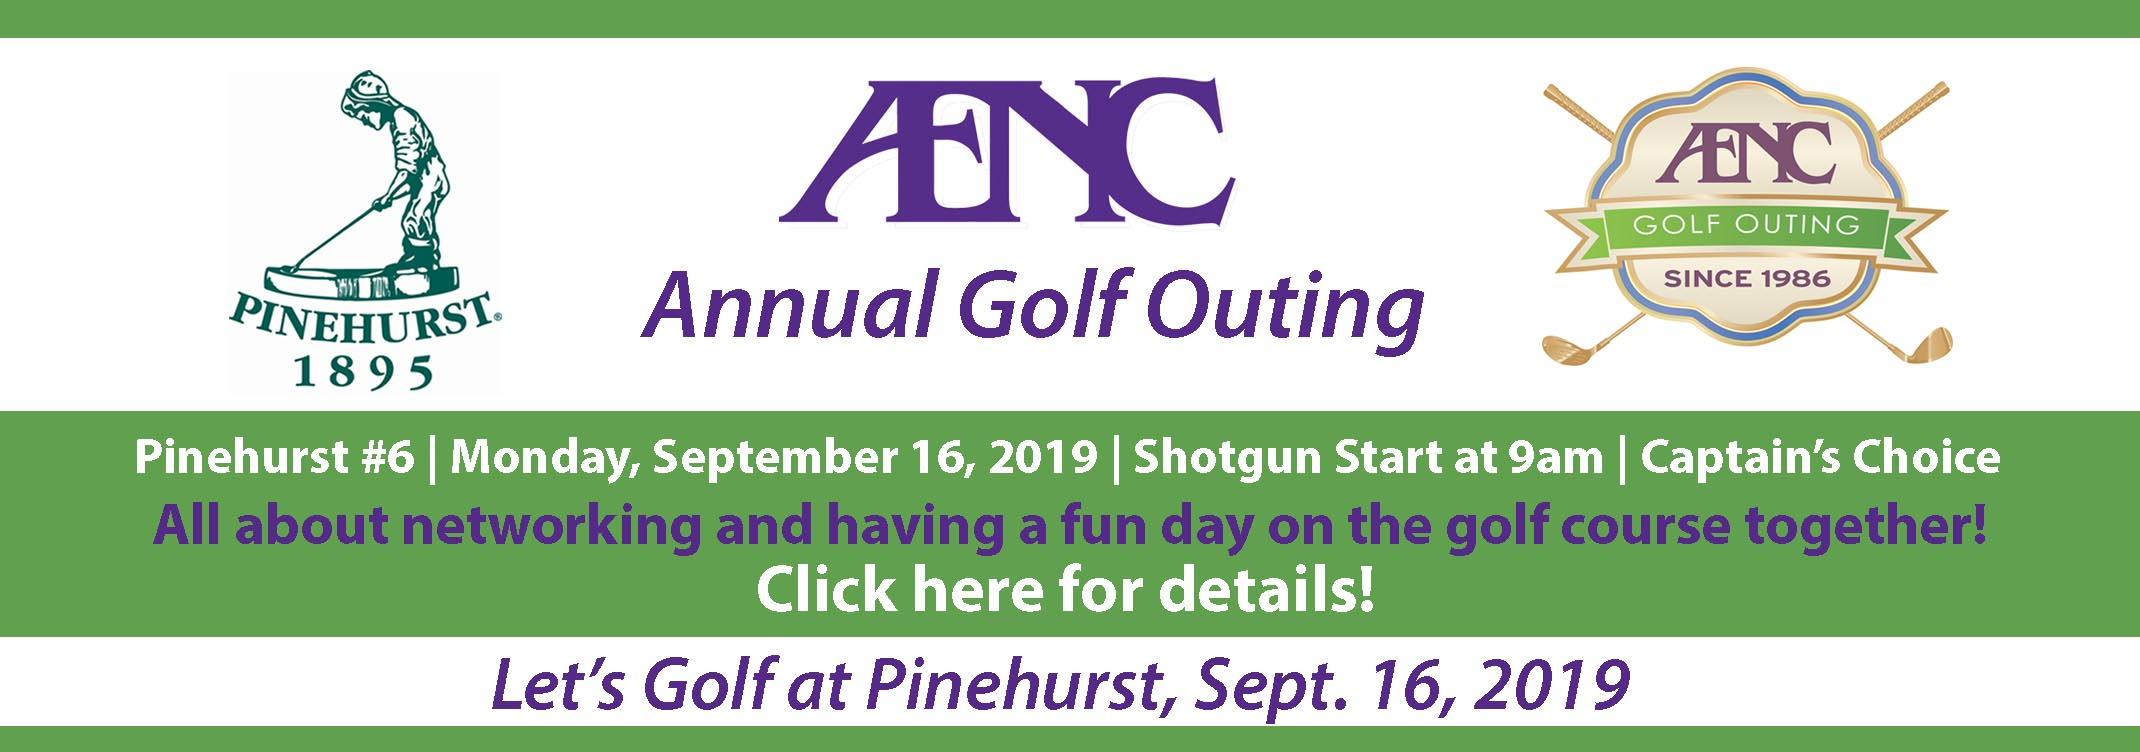 AENC Annual Golf Outing in Pinehurst